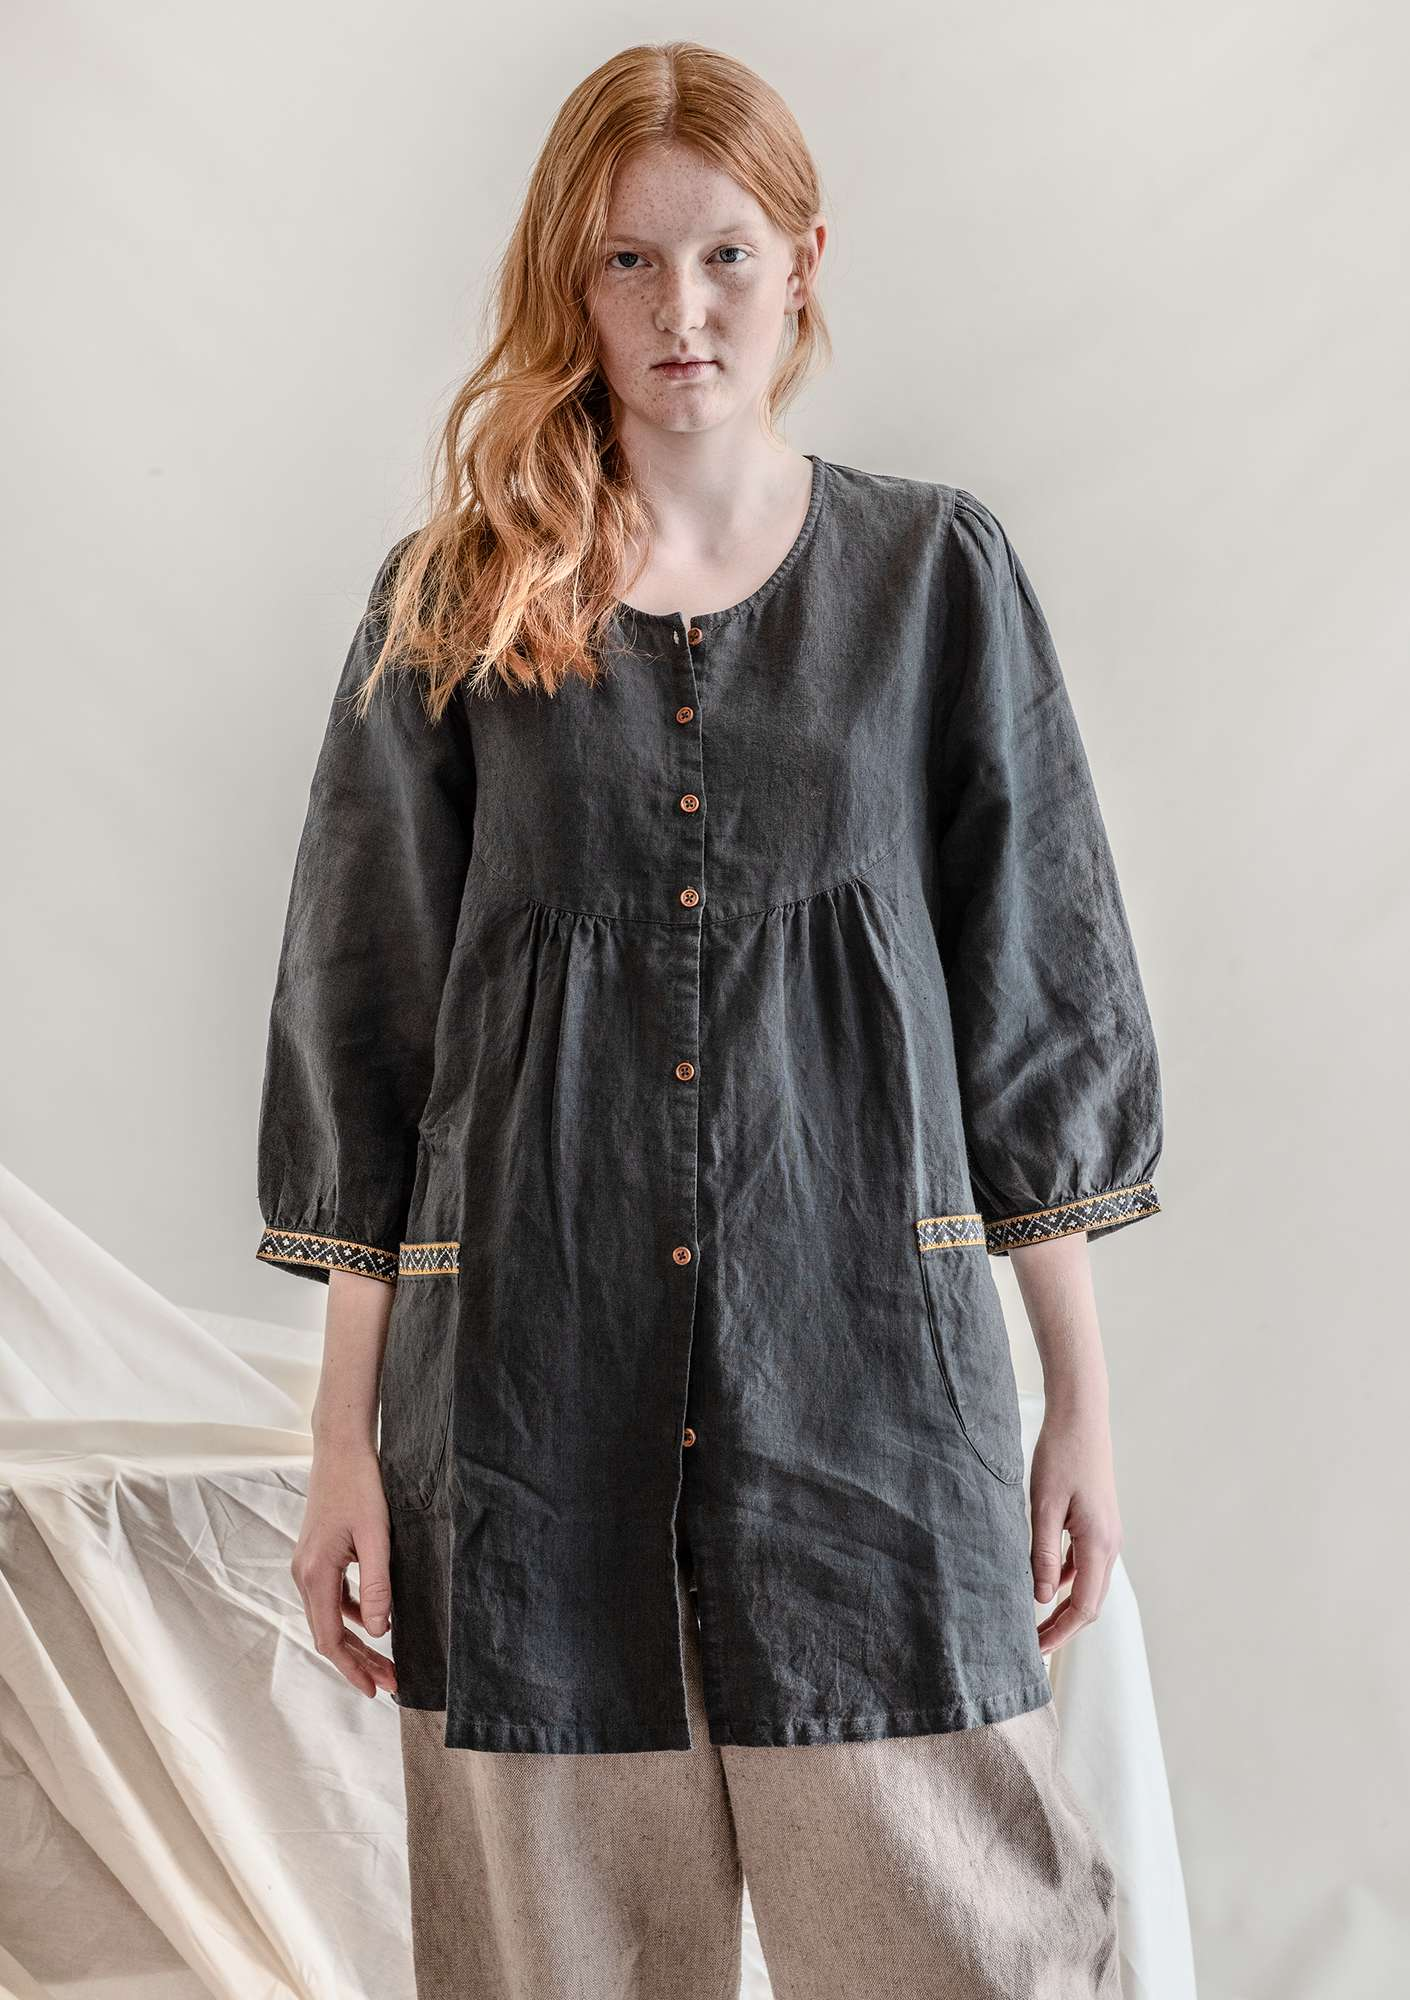 Artist's blouse in linen ash gray